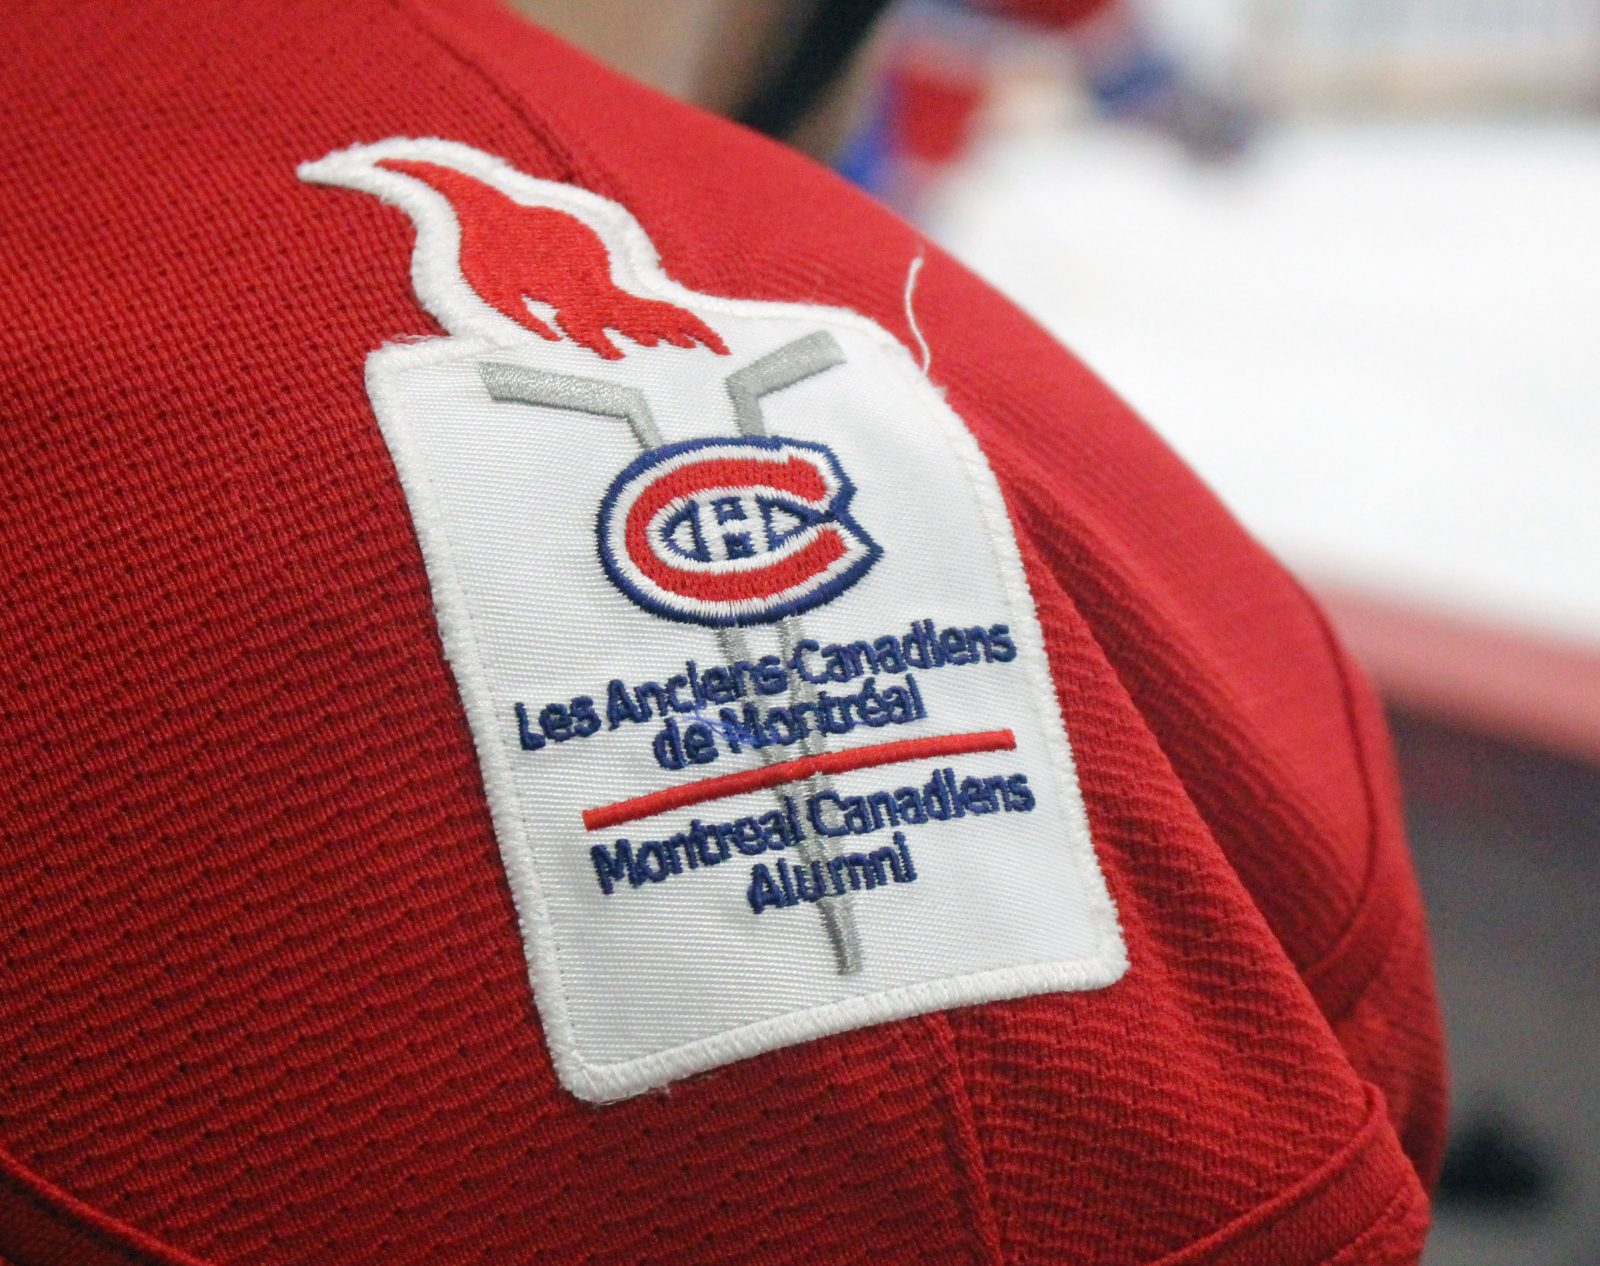 Montreal Canadiens Alumni coming to Cornwall